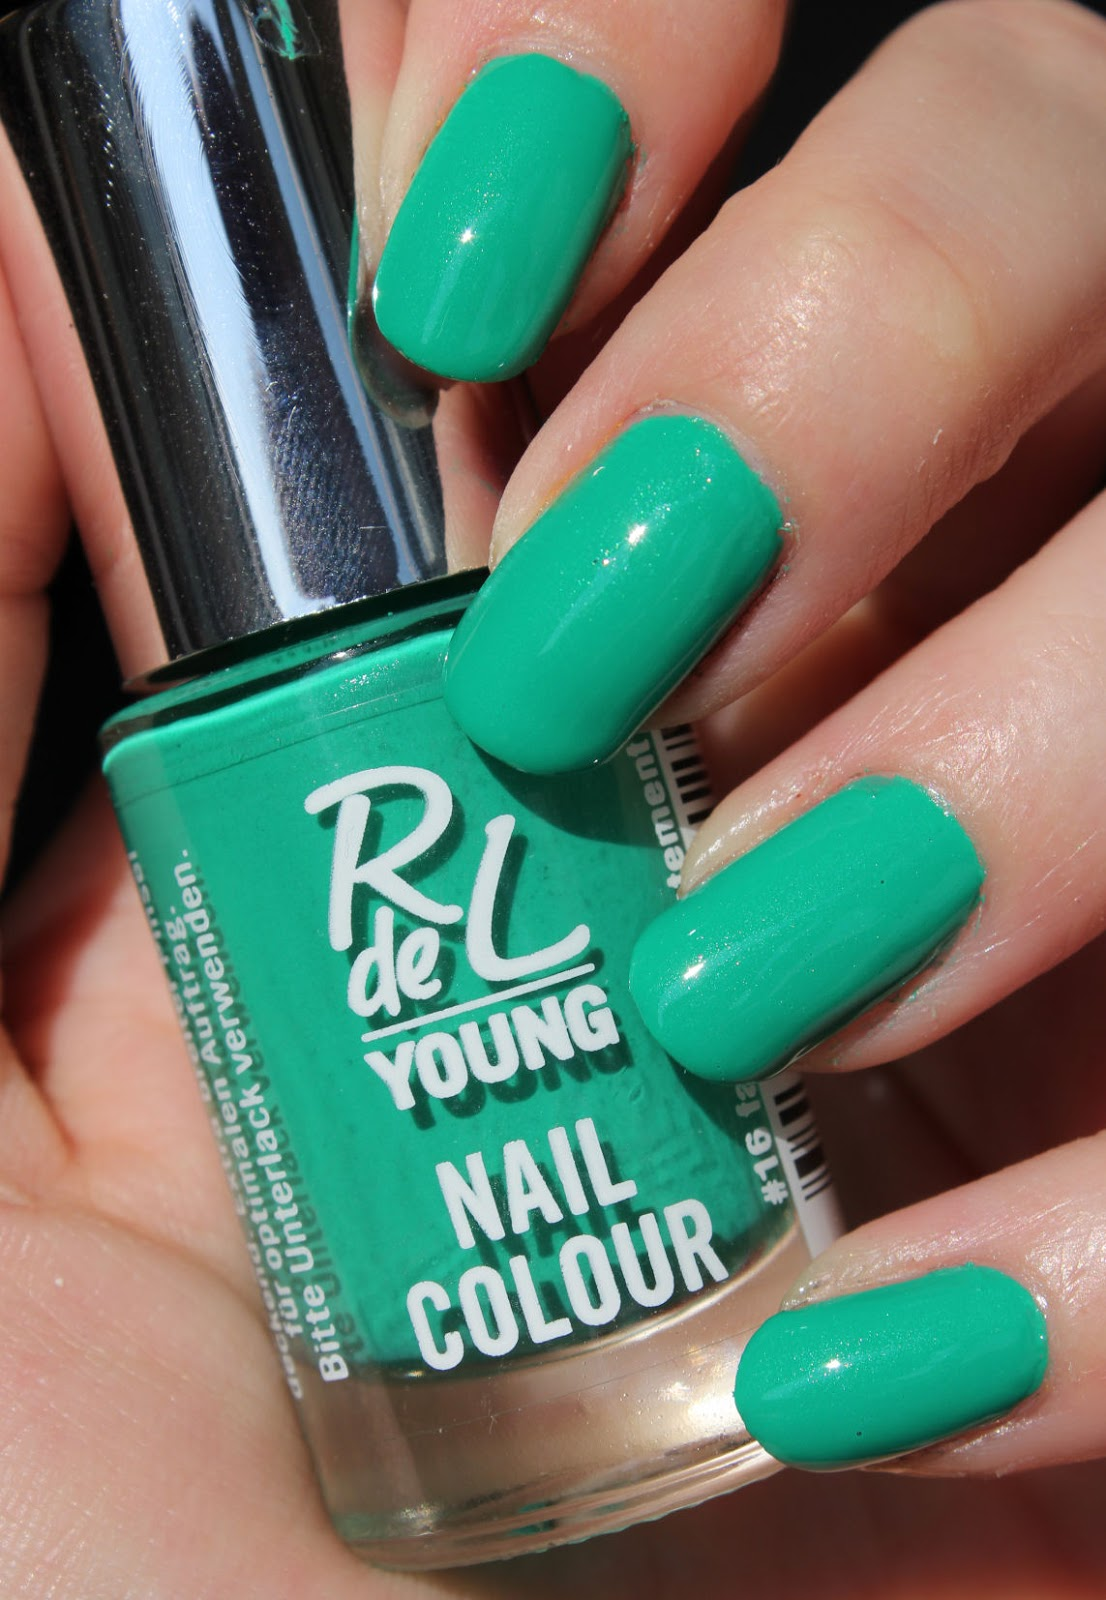 http://lacquediction.blogspot.de/2014/04/rival-de-loop-young-nail-colour-16.html